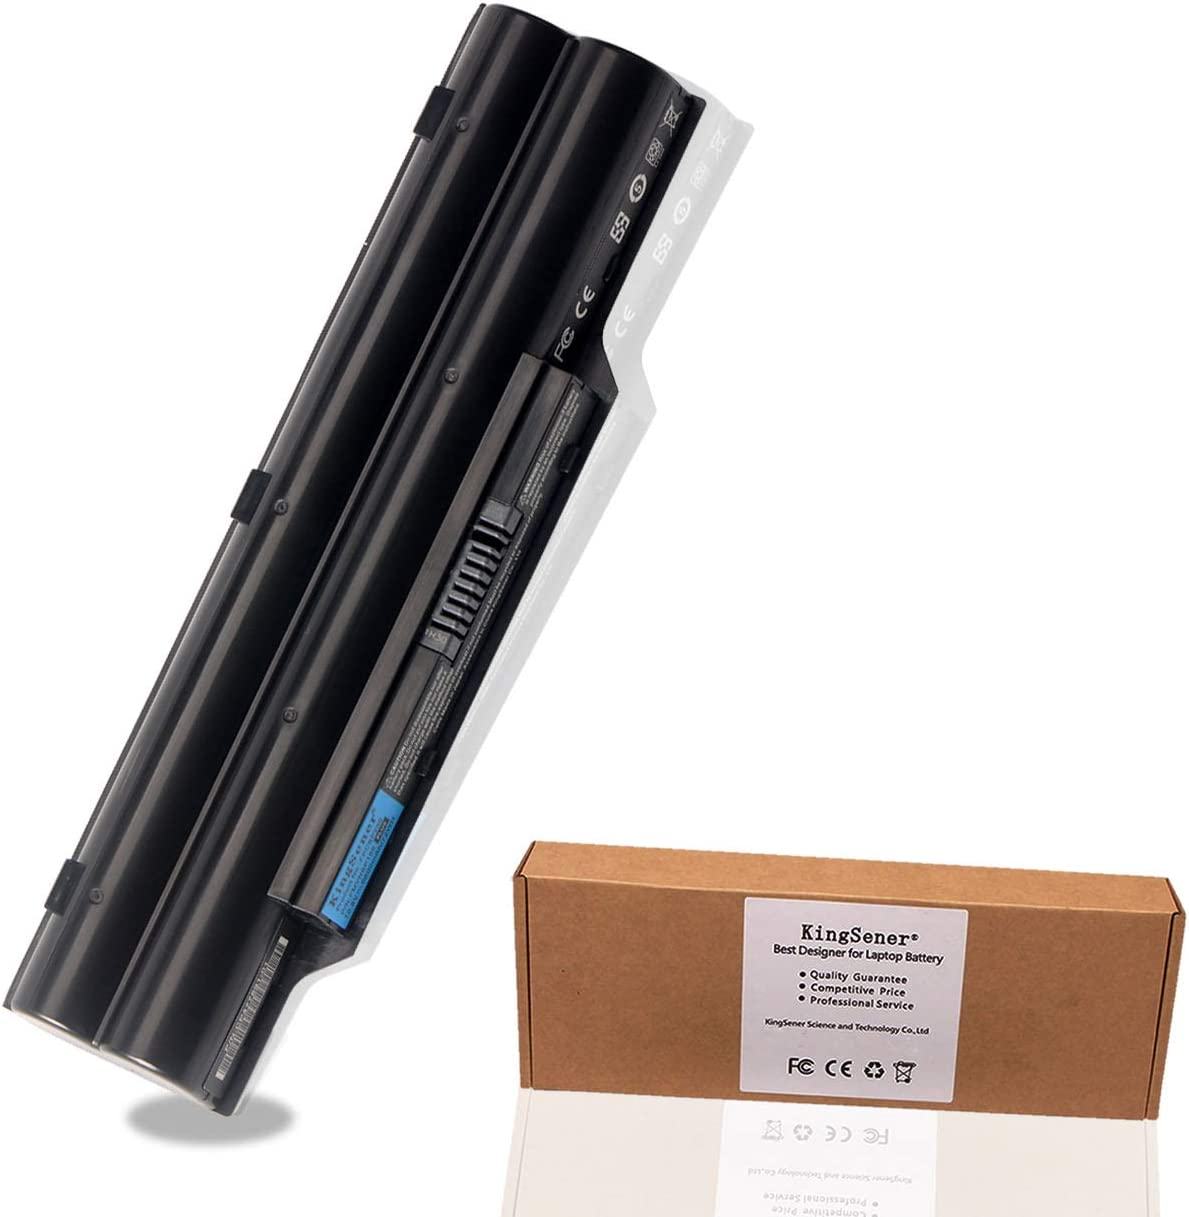 Kingsener FPCBP250 Lapto Battery for FUJITSU LifeBook A530 A531 AH530 AH531 LH701 LH520 LH522 PH521 FMVNBP186 FMVNBP189 FPCBP250AP (FPCBP250_72WH US)